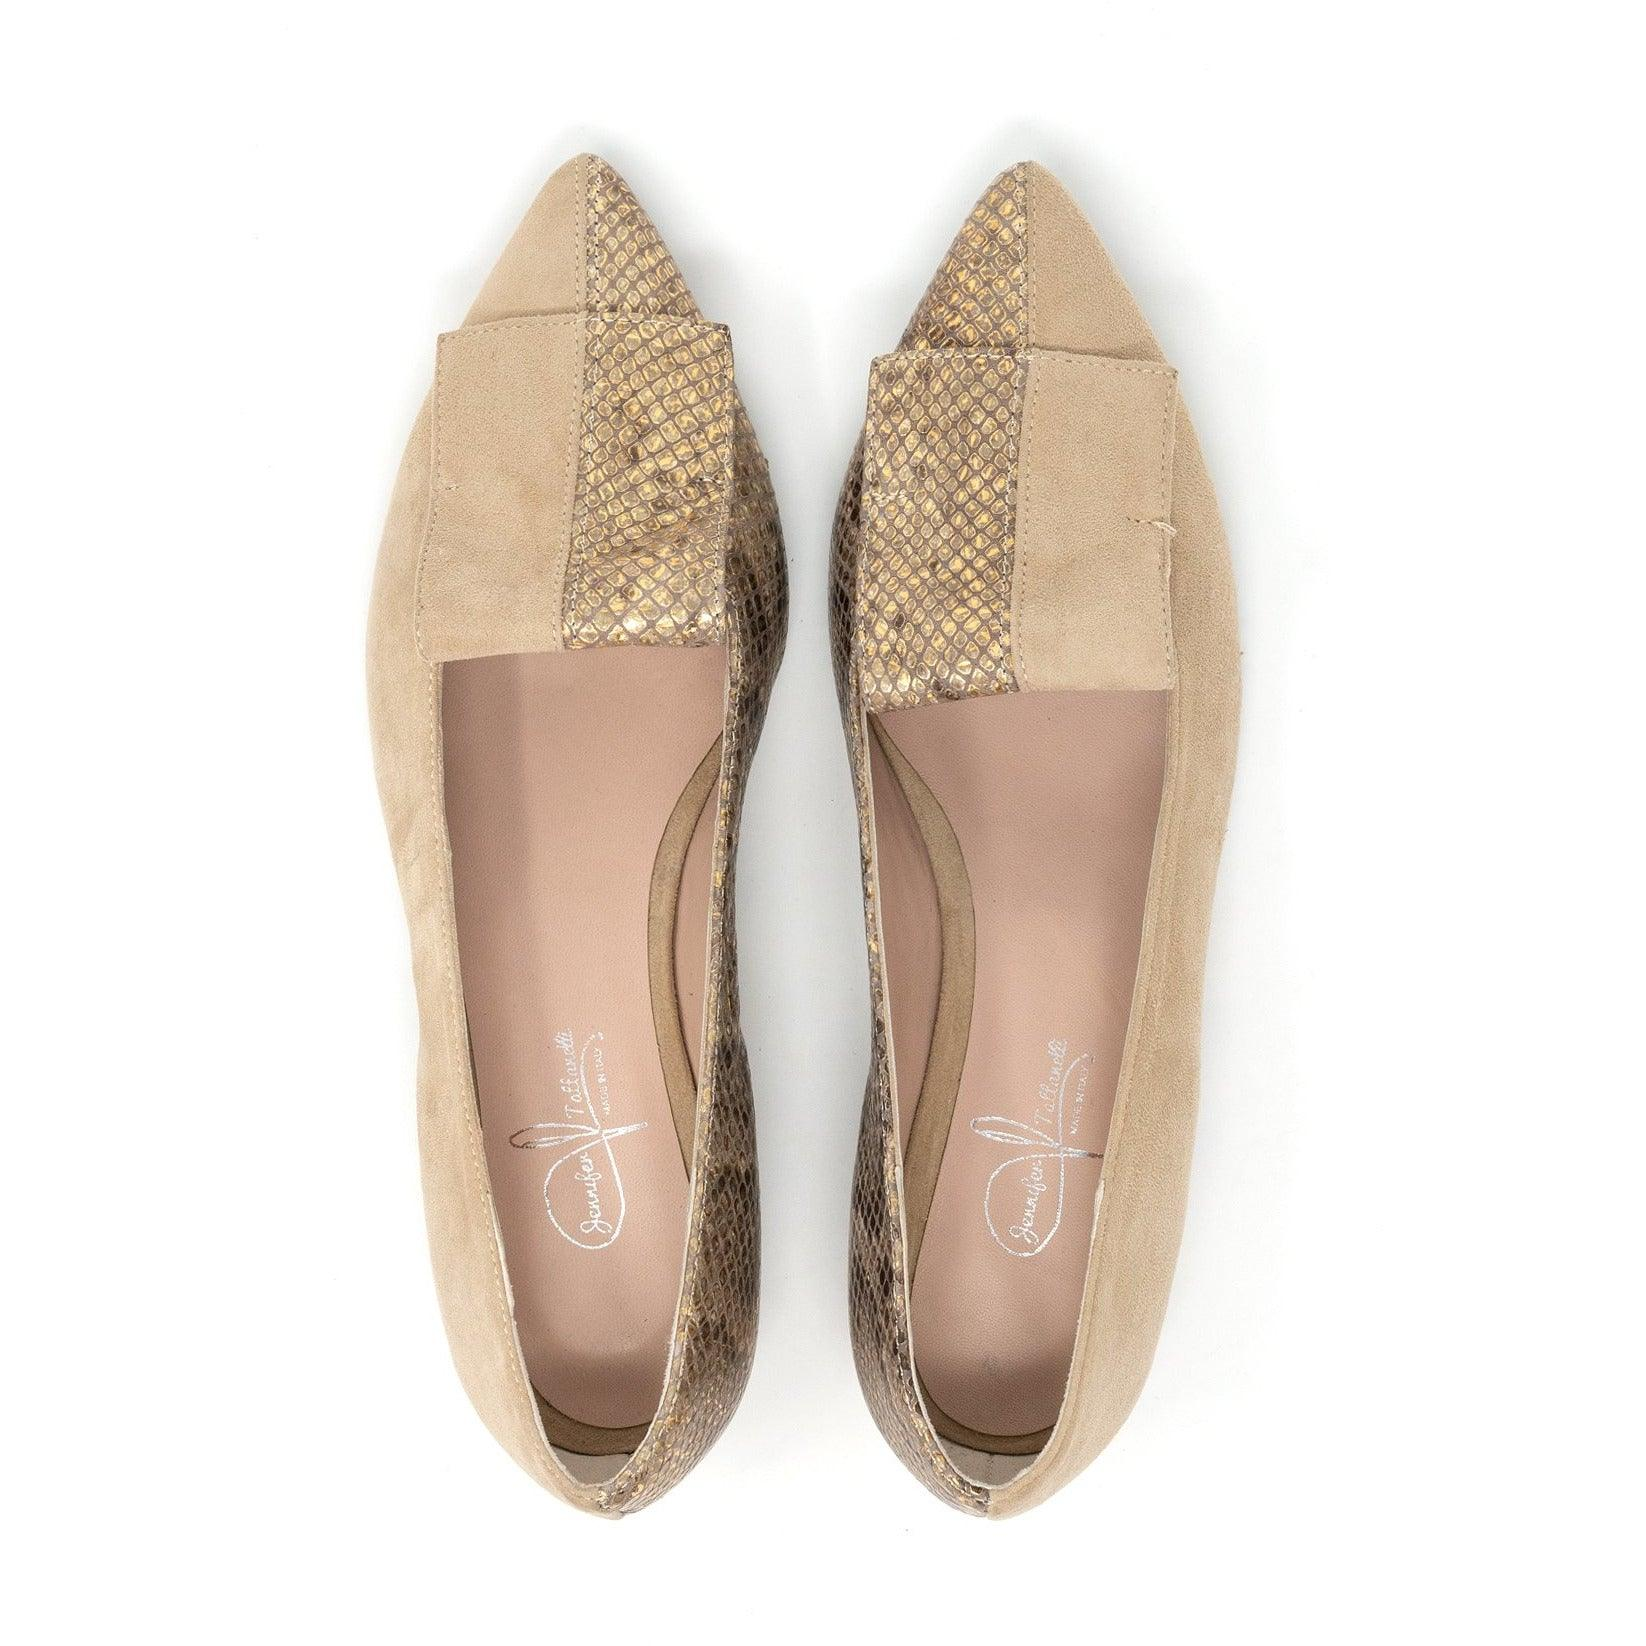 MIL8201 T10 Women Flats - New Fall Winter 2019-2020 Collection